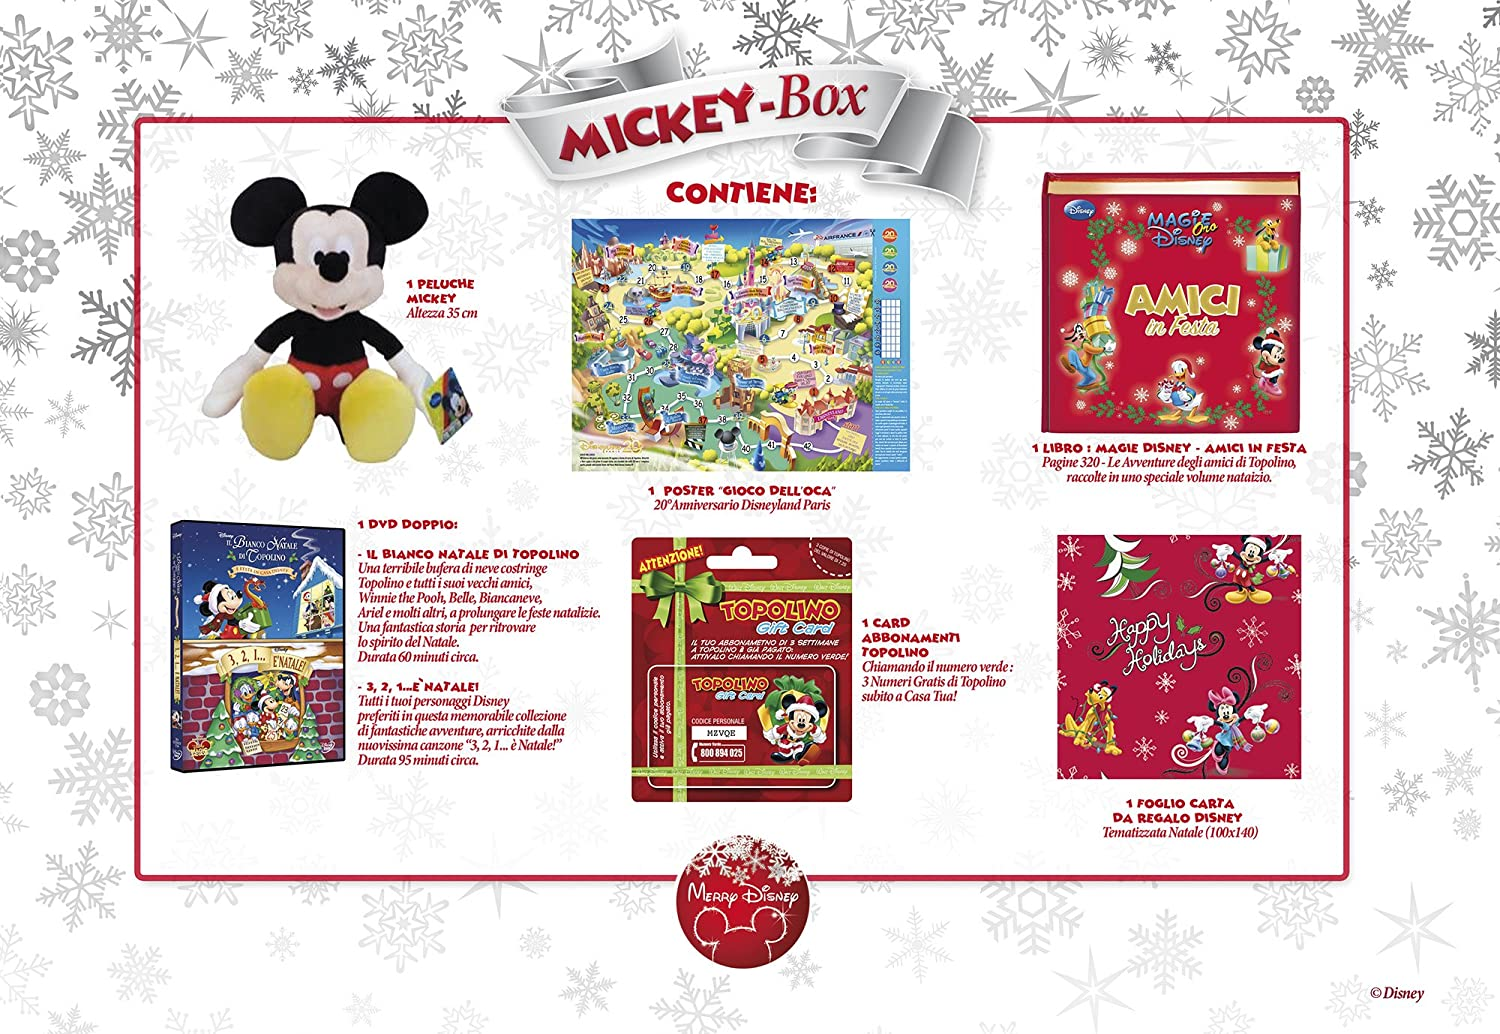 Amazon.com: merry disney box topolino (2 dvd+libro+peluche) box set dvd Italian Import: Movies & TV